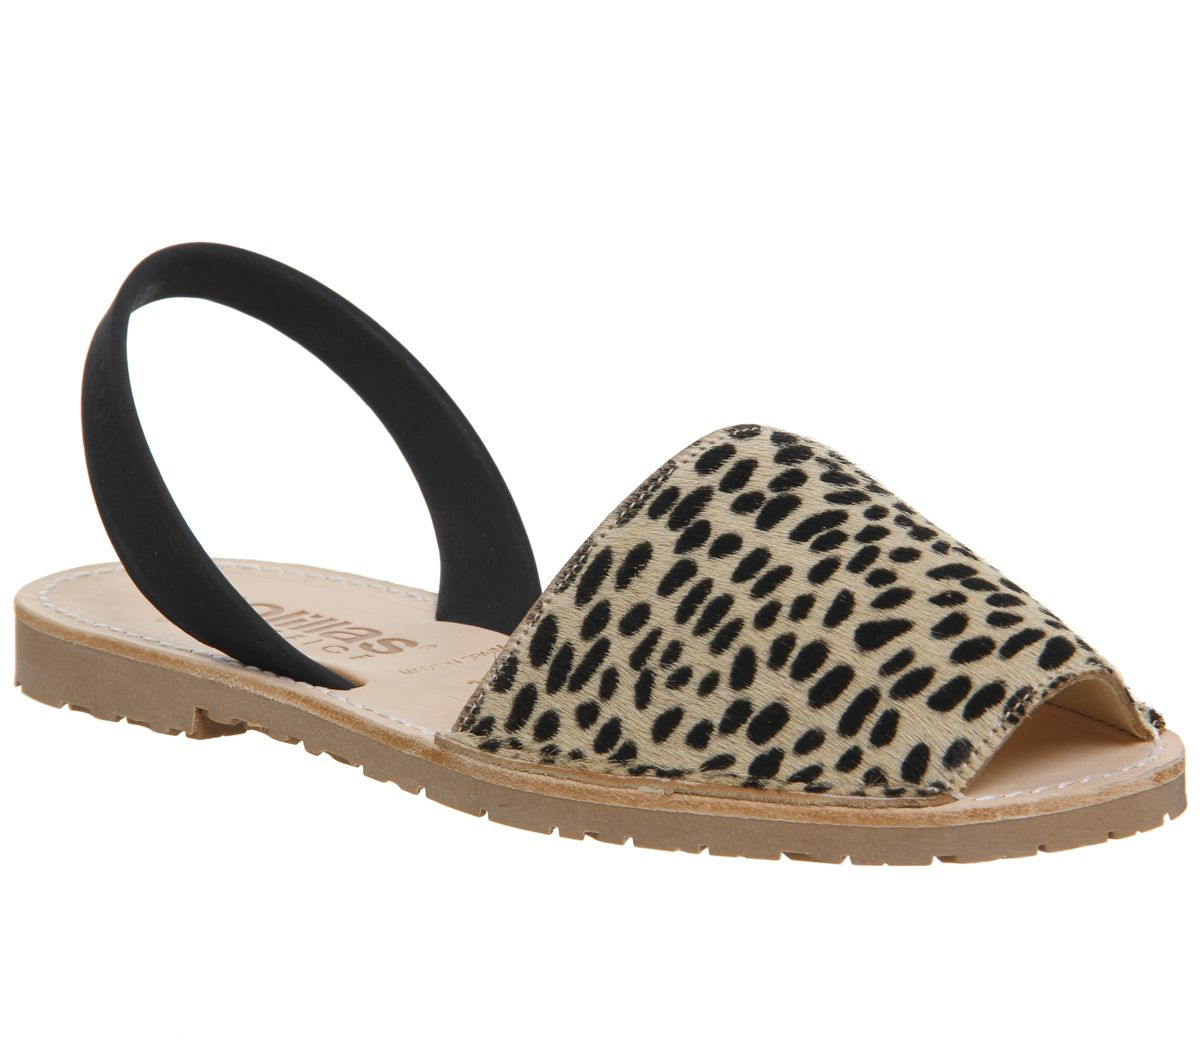 Solillas Solillas Sandals, Leopard